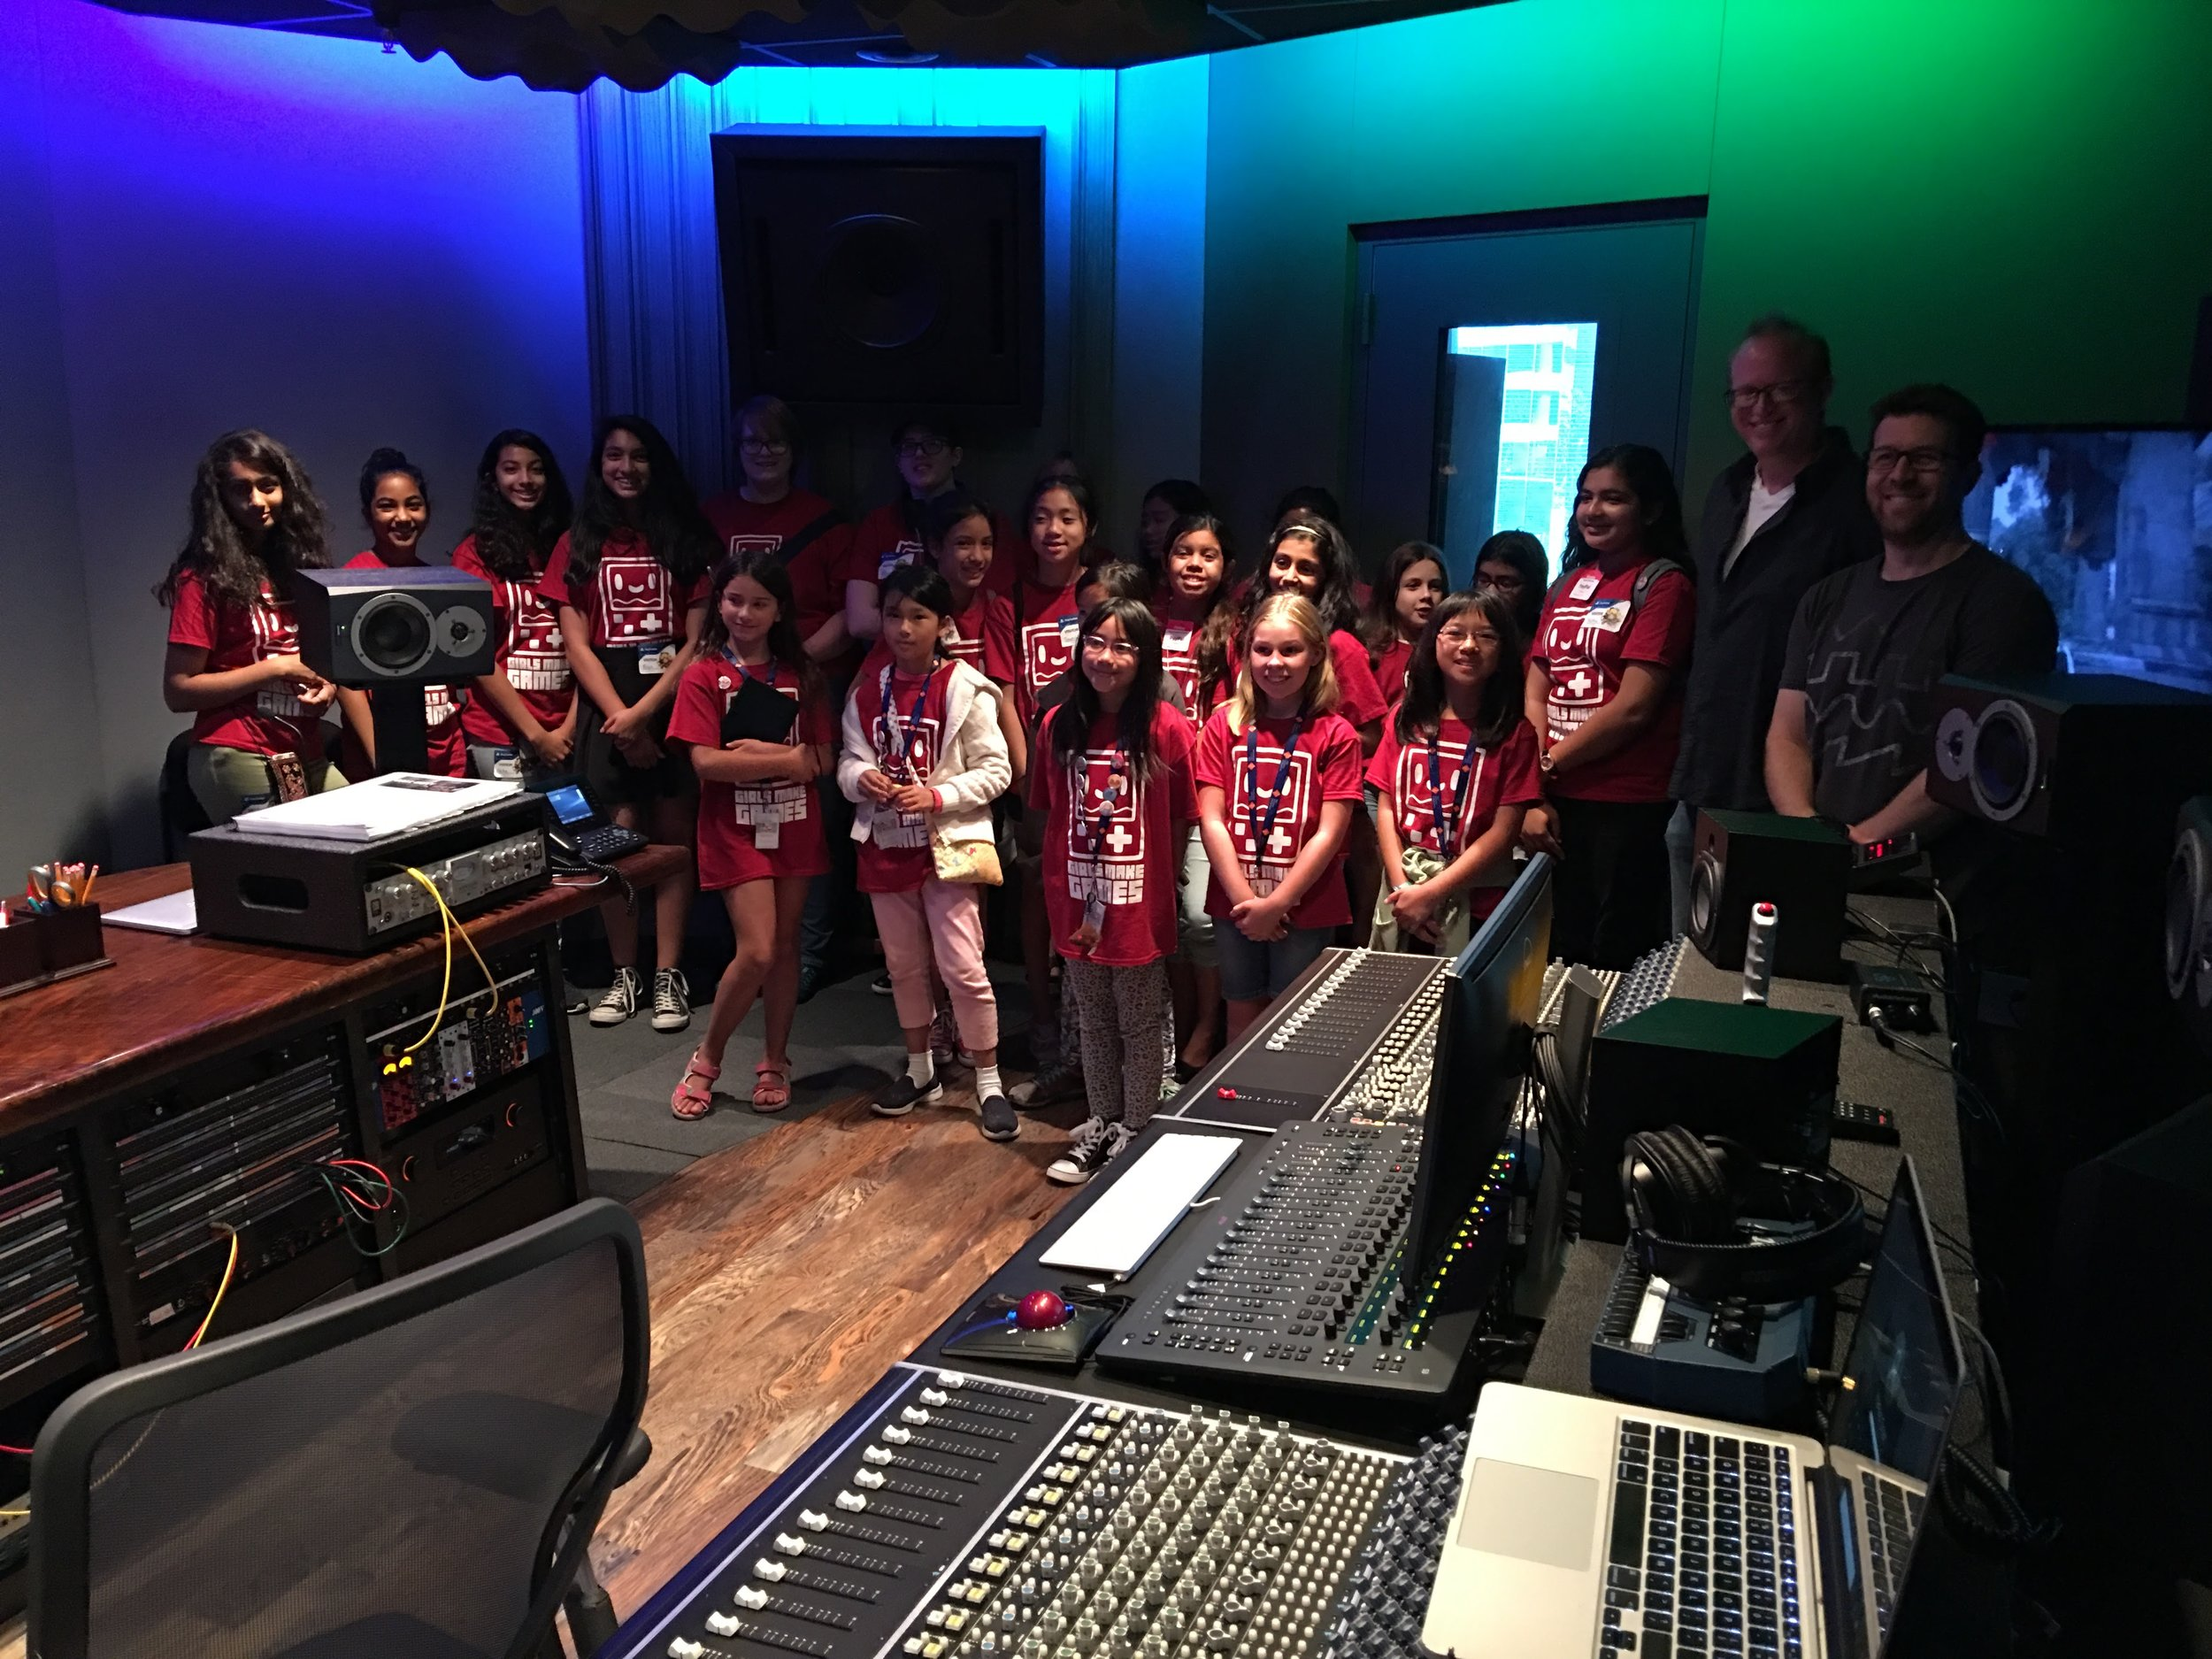 Campers at the 2018 PlayStation field trip, visiting the very cool Music Room!